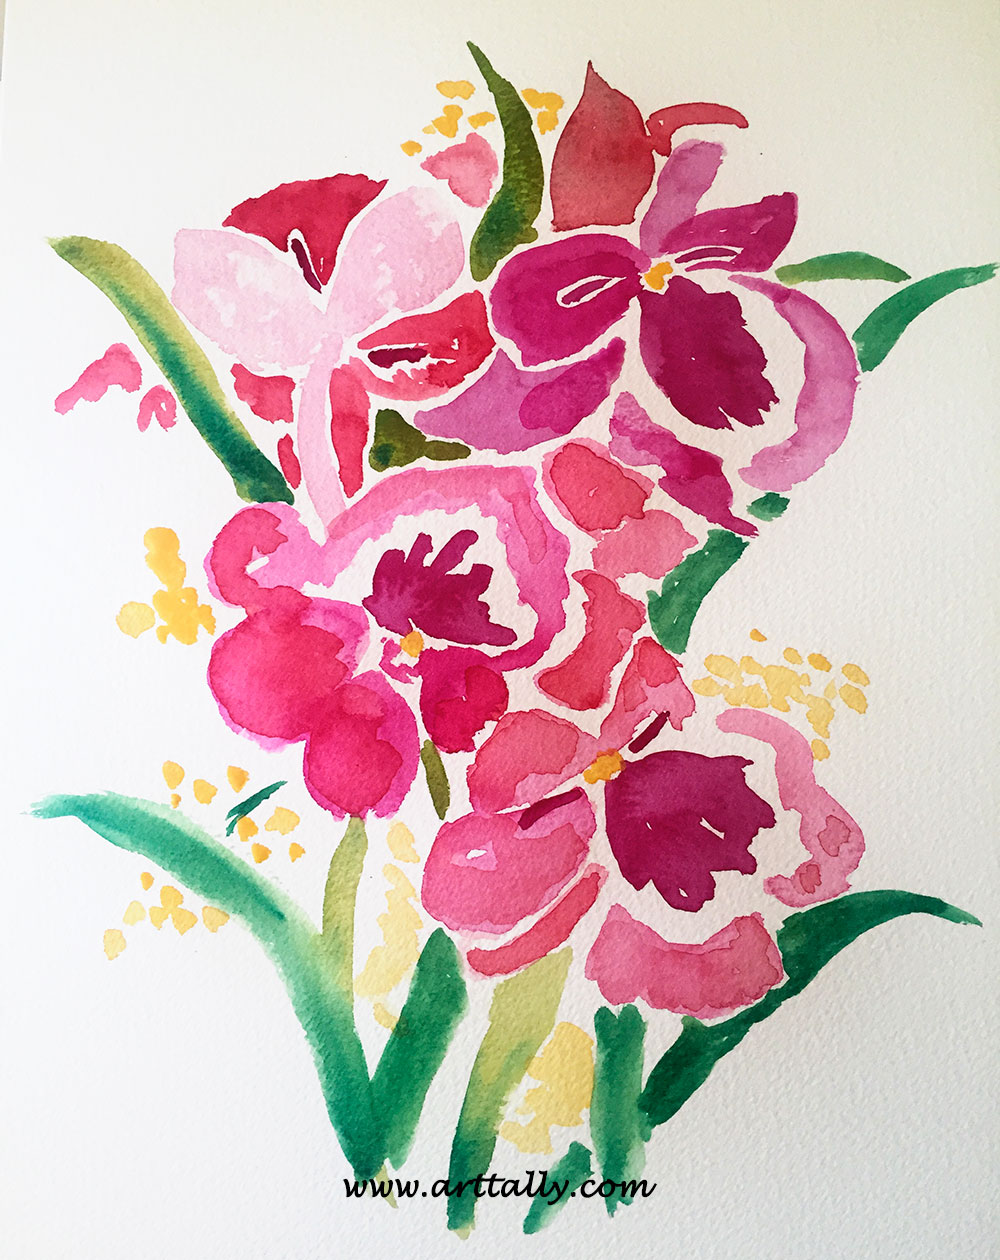 30-minute-flowers-no-1-w_arttally